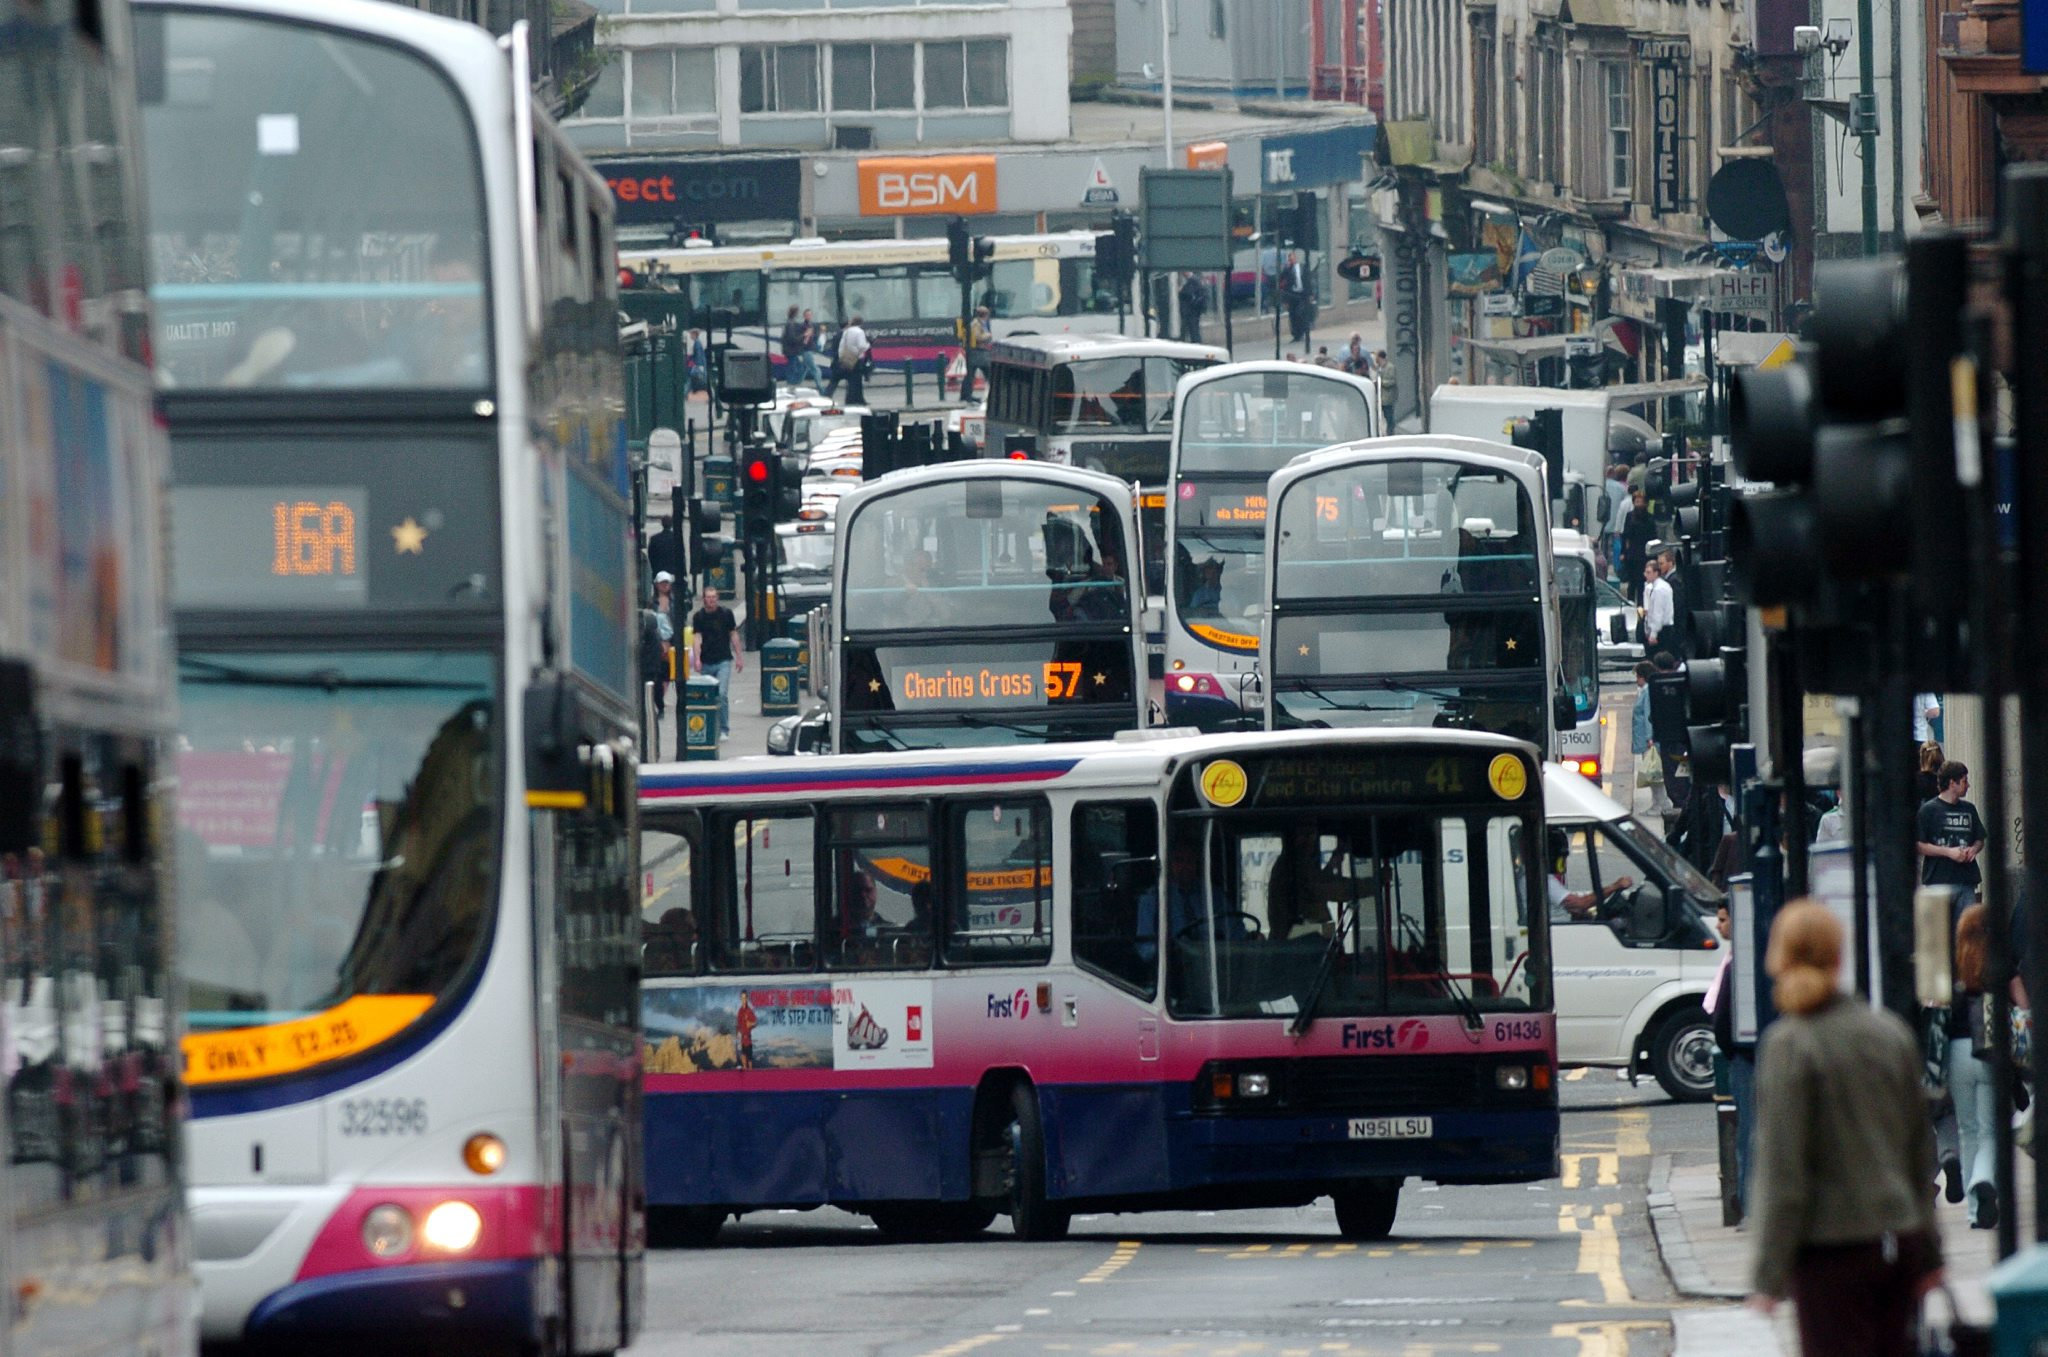 View showing buses queing in Hope street - the most polluted street in Scotland..